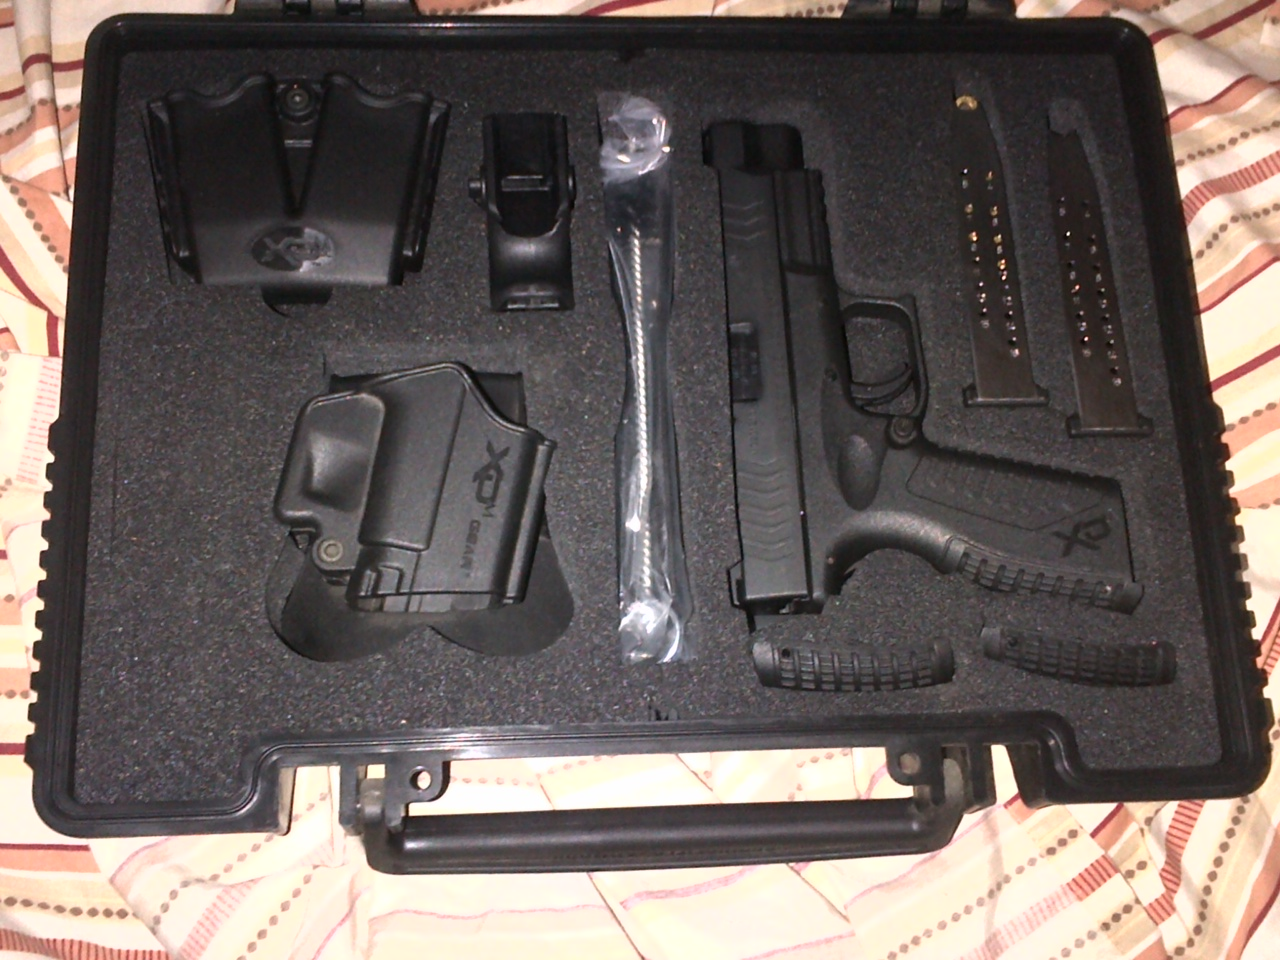 Toying with getting a springfield XDM-photo.jpg